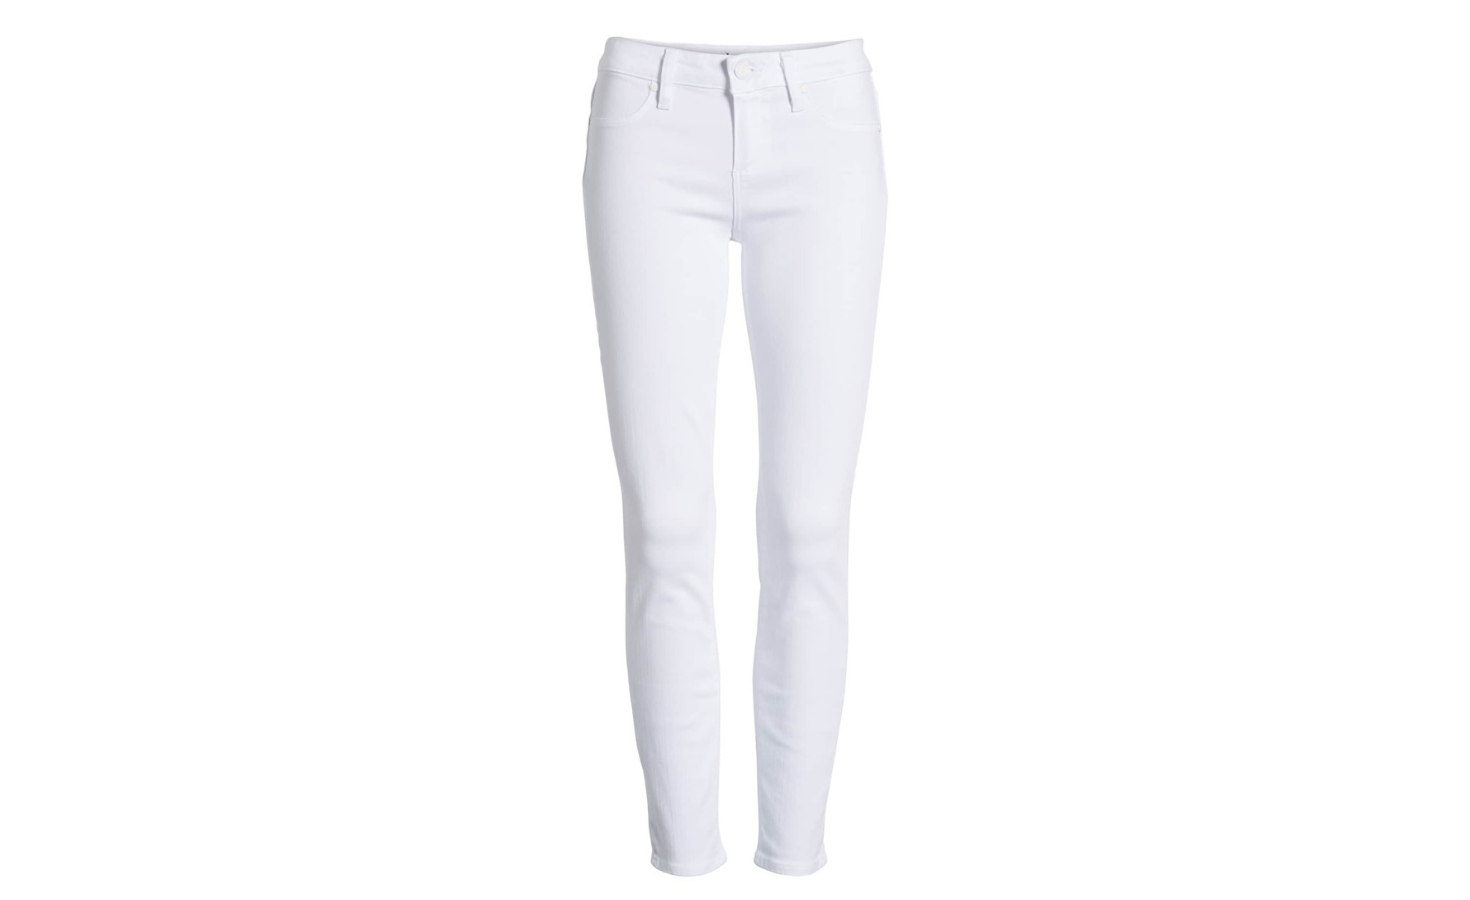 Spring 2019 Wardrobe Essentials White Jeans